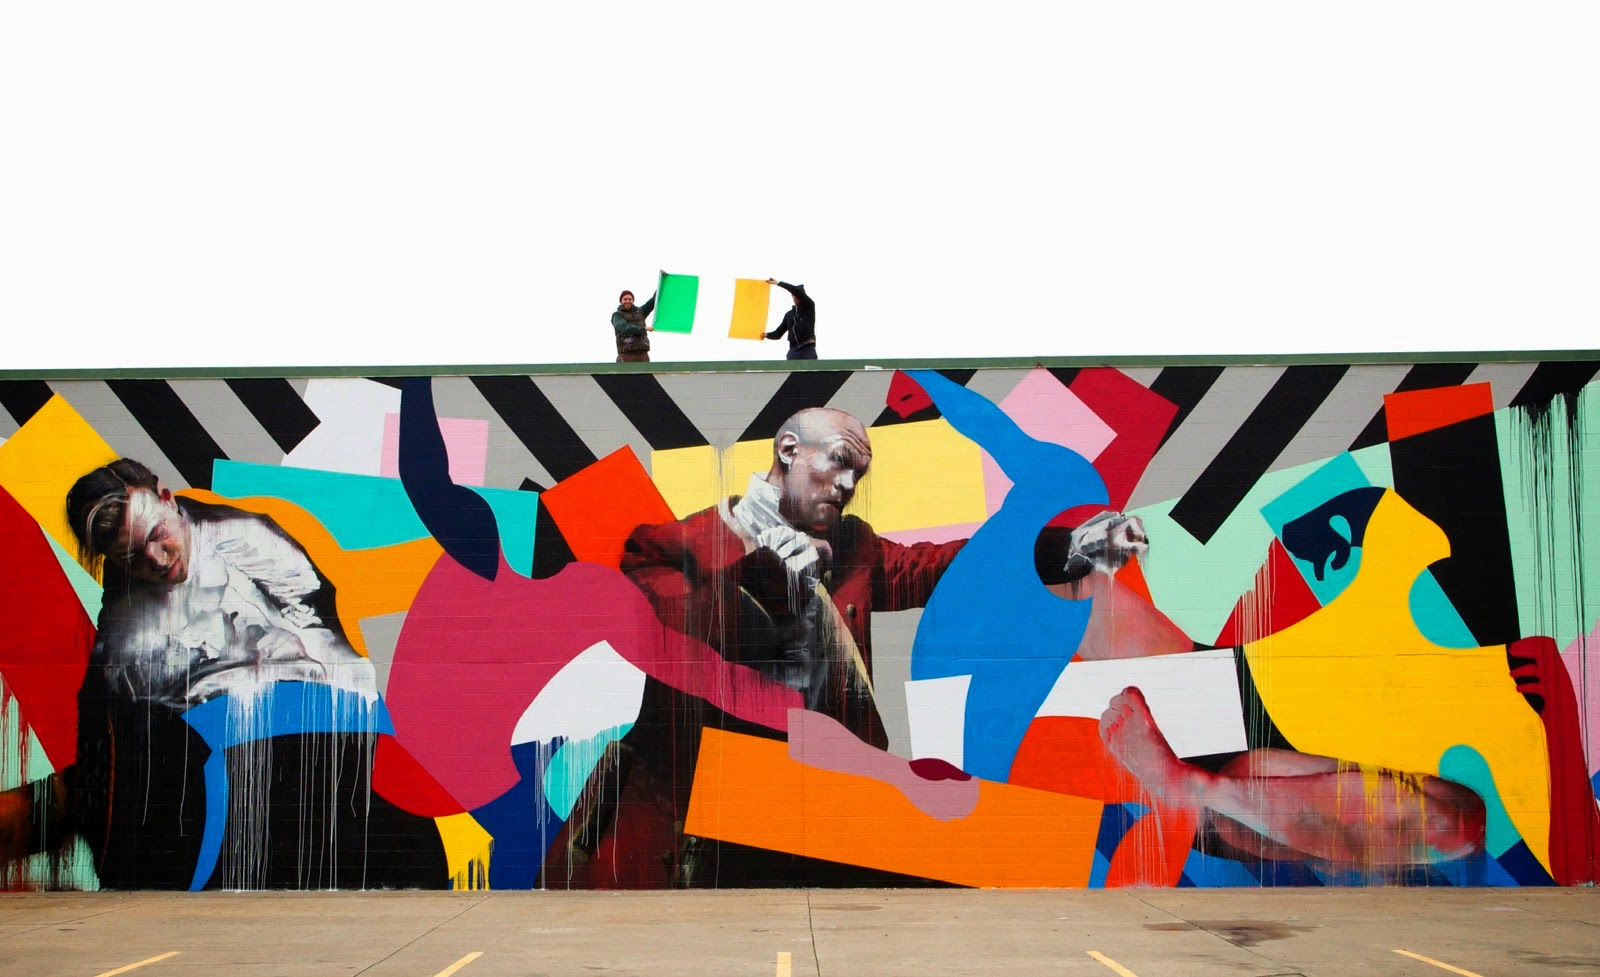 Conor Harrington and Maser collaborate on a new mural in Fort Smith, USA